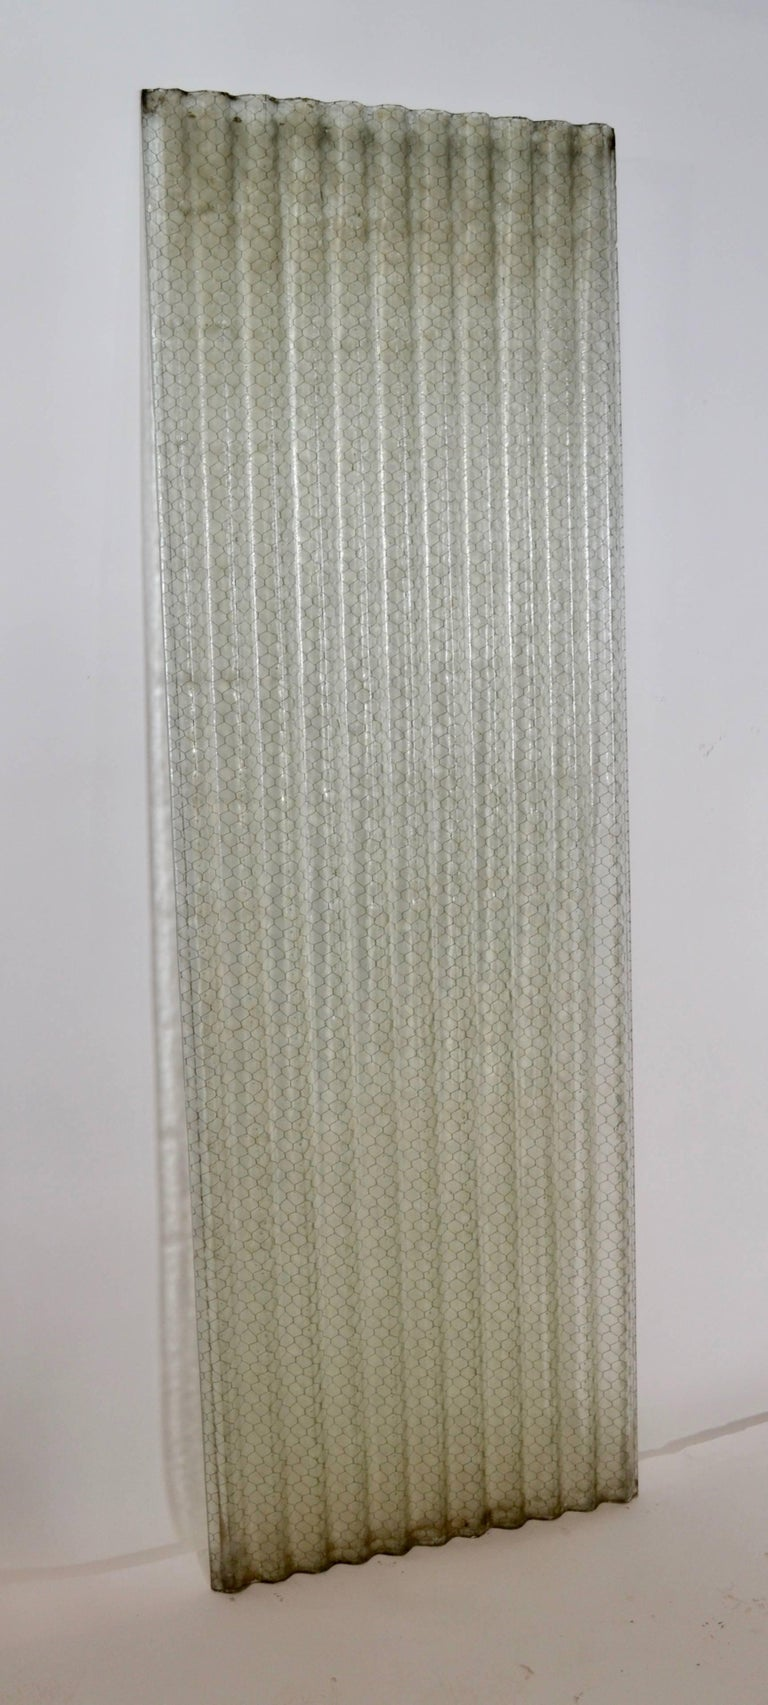 These corrugated chicken wire glass panels were harvested from a former US Naval facility. The panels were used in vertical applications and offered both security as well as safety. Some have edge chipping that is consistent with age and use. The